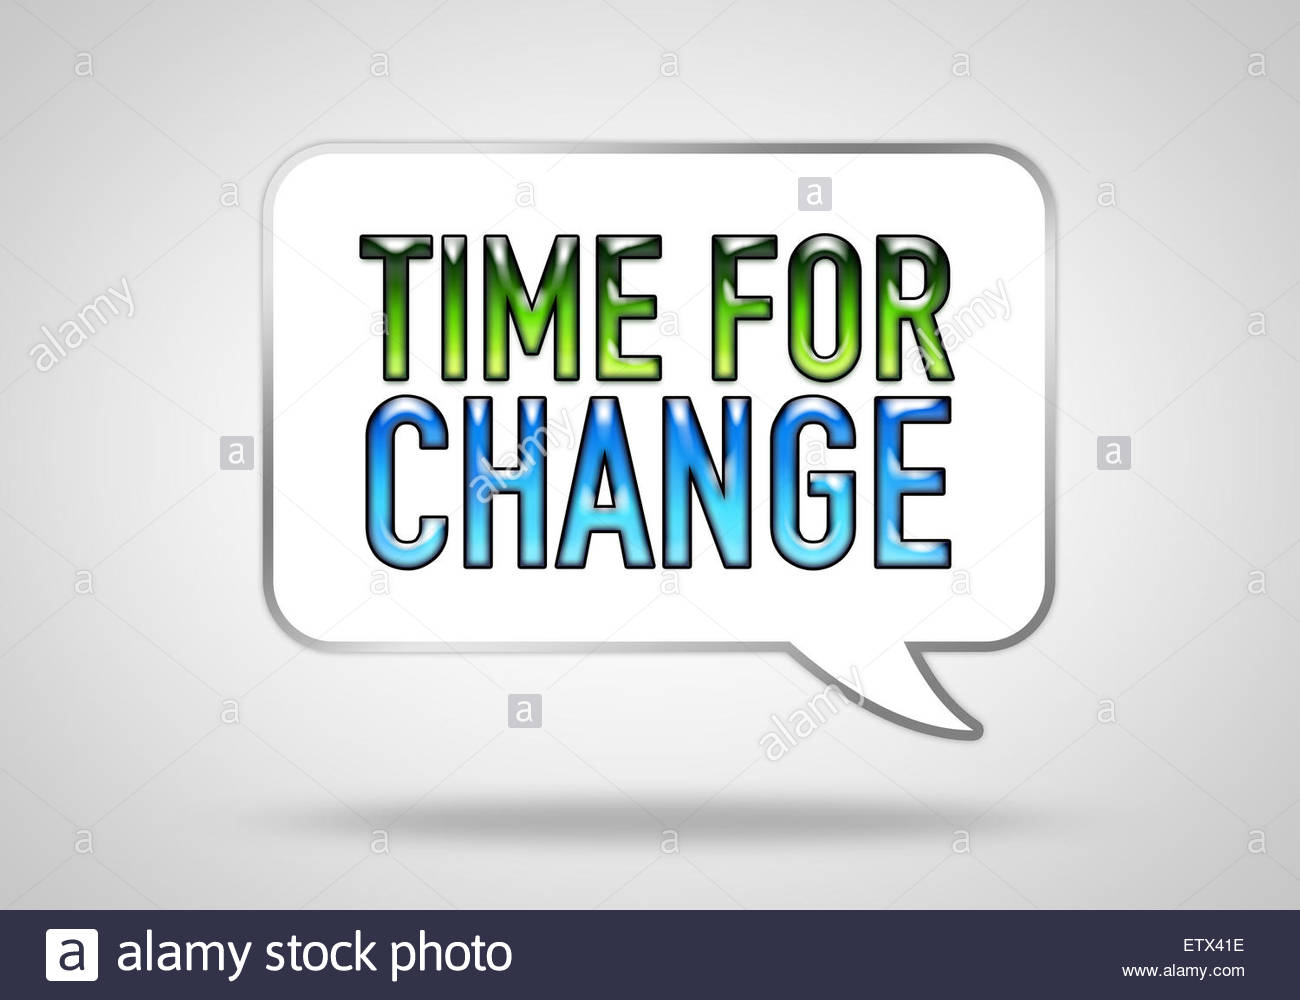 time for change - speech balloon concept - Stock Image